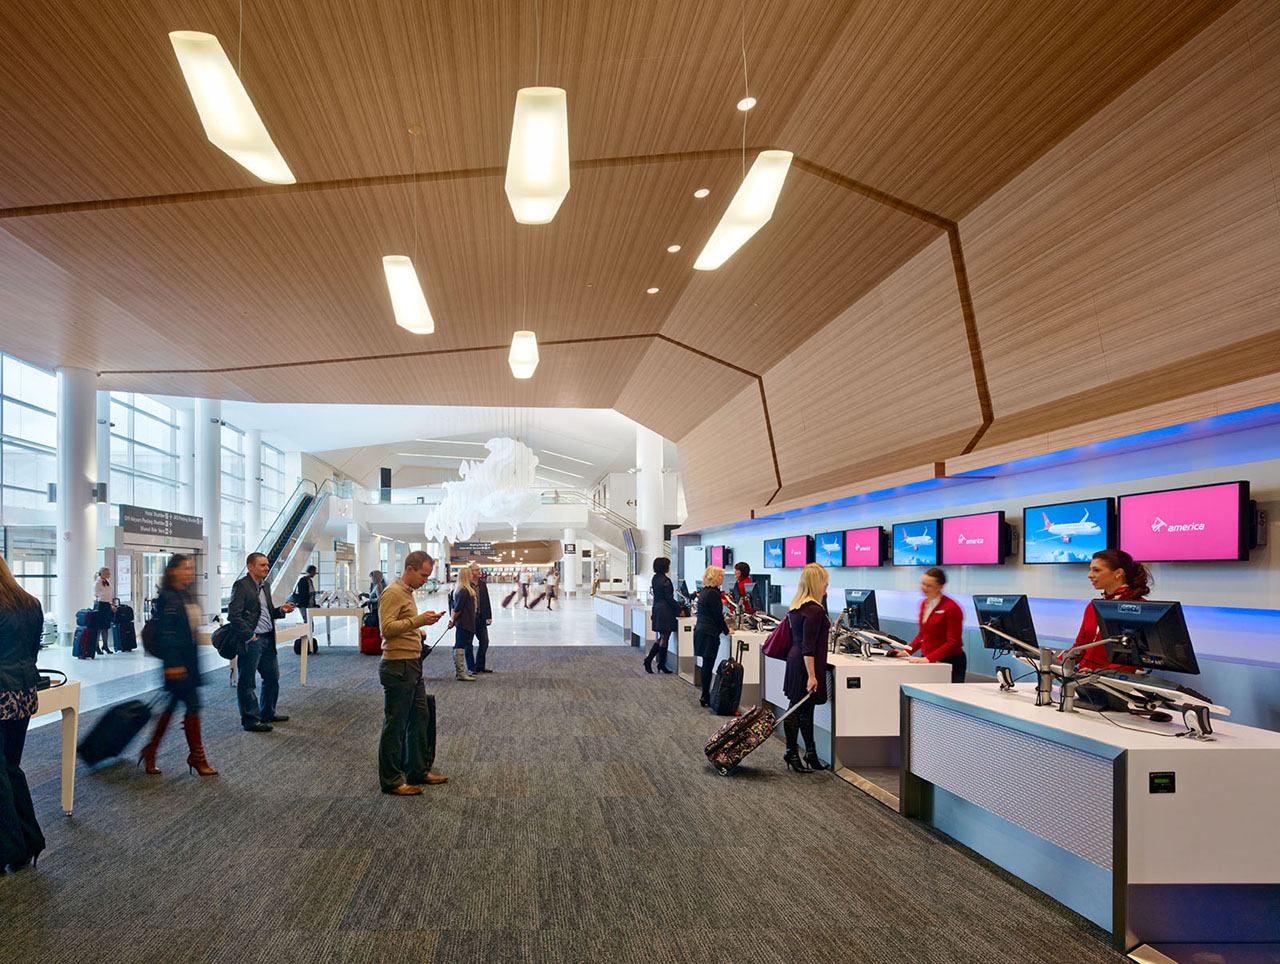 Sustainable education san francisco international airport for International decor gates